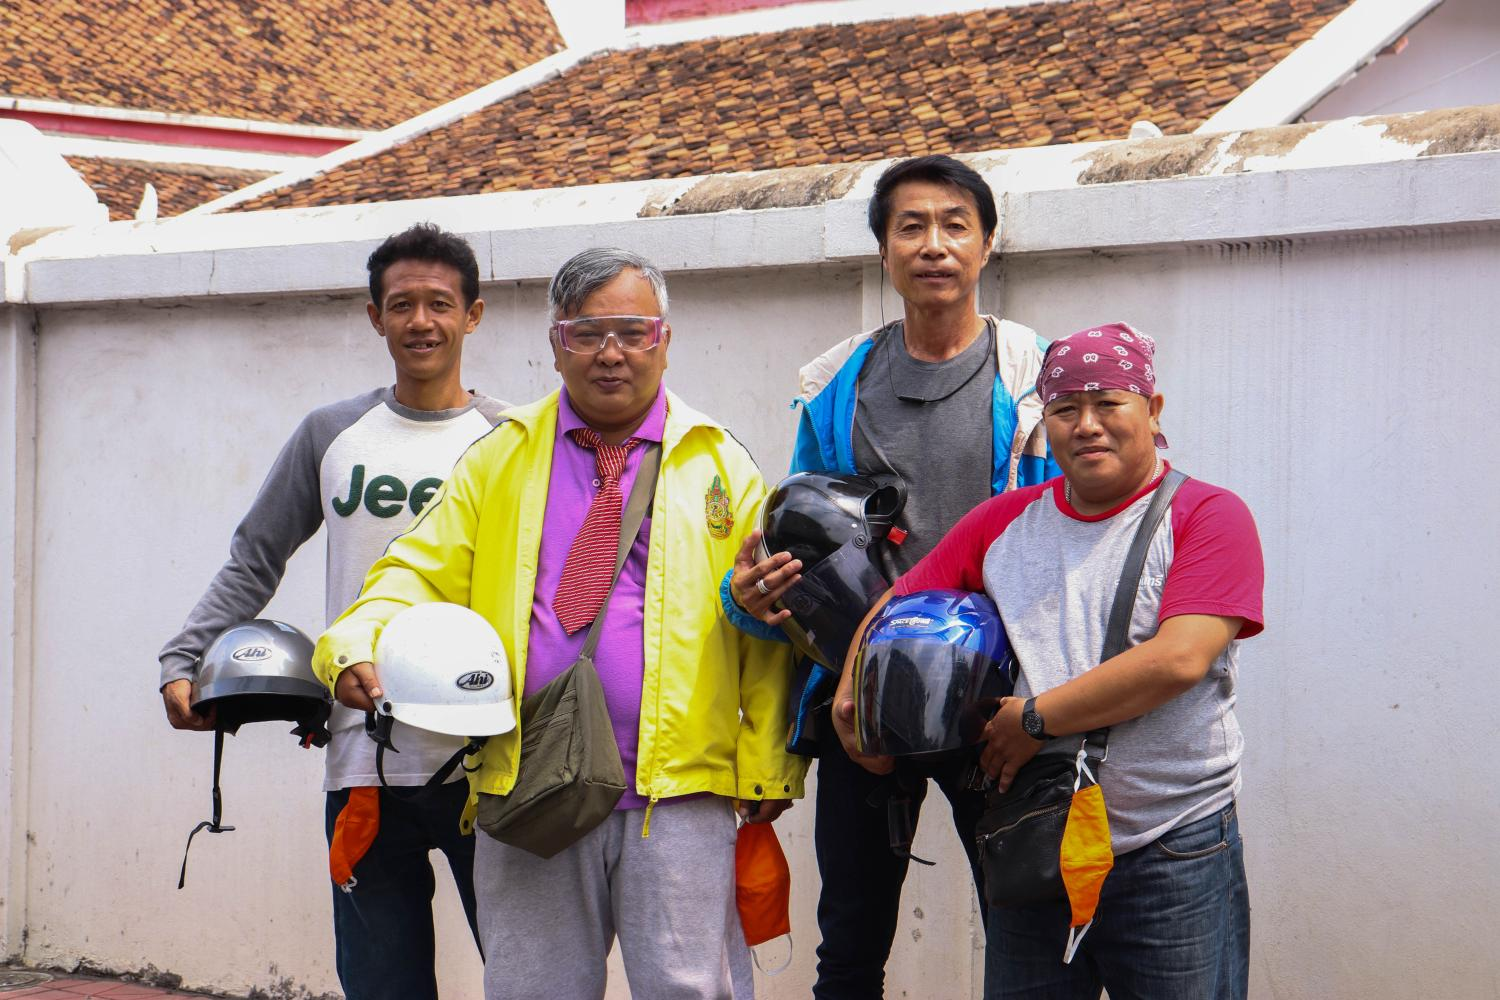 Left  Locall Thailand, part of the Satarana social enterprise network, helps connect unemployed motorcycle-taxi drivers and tour guides to local restaurants in need of delivery services.